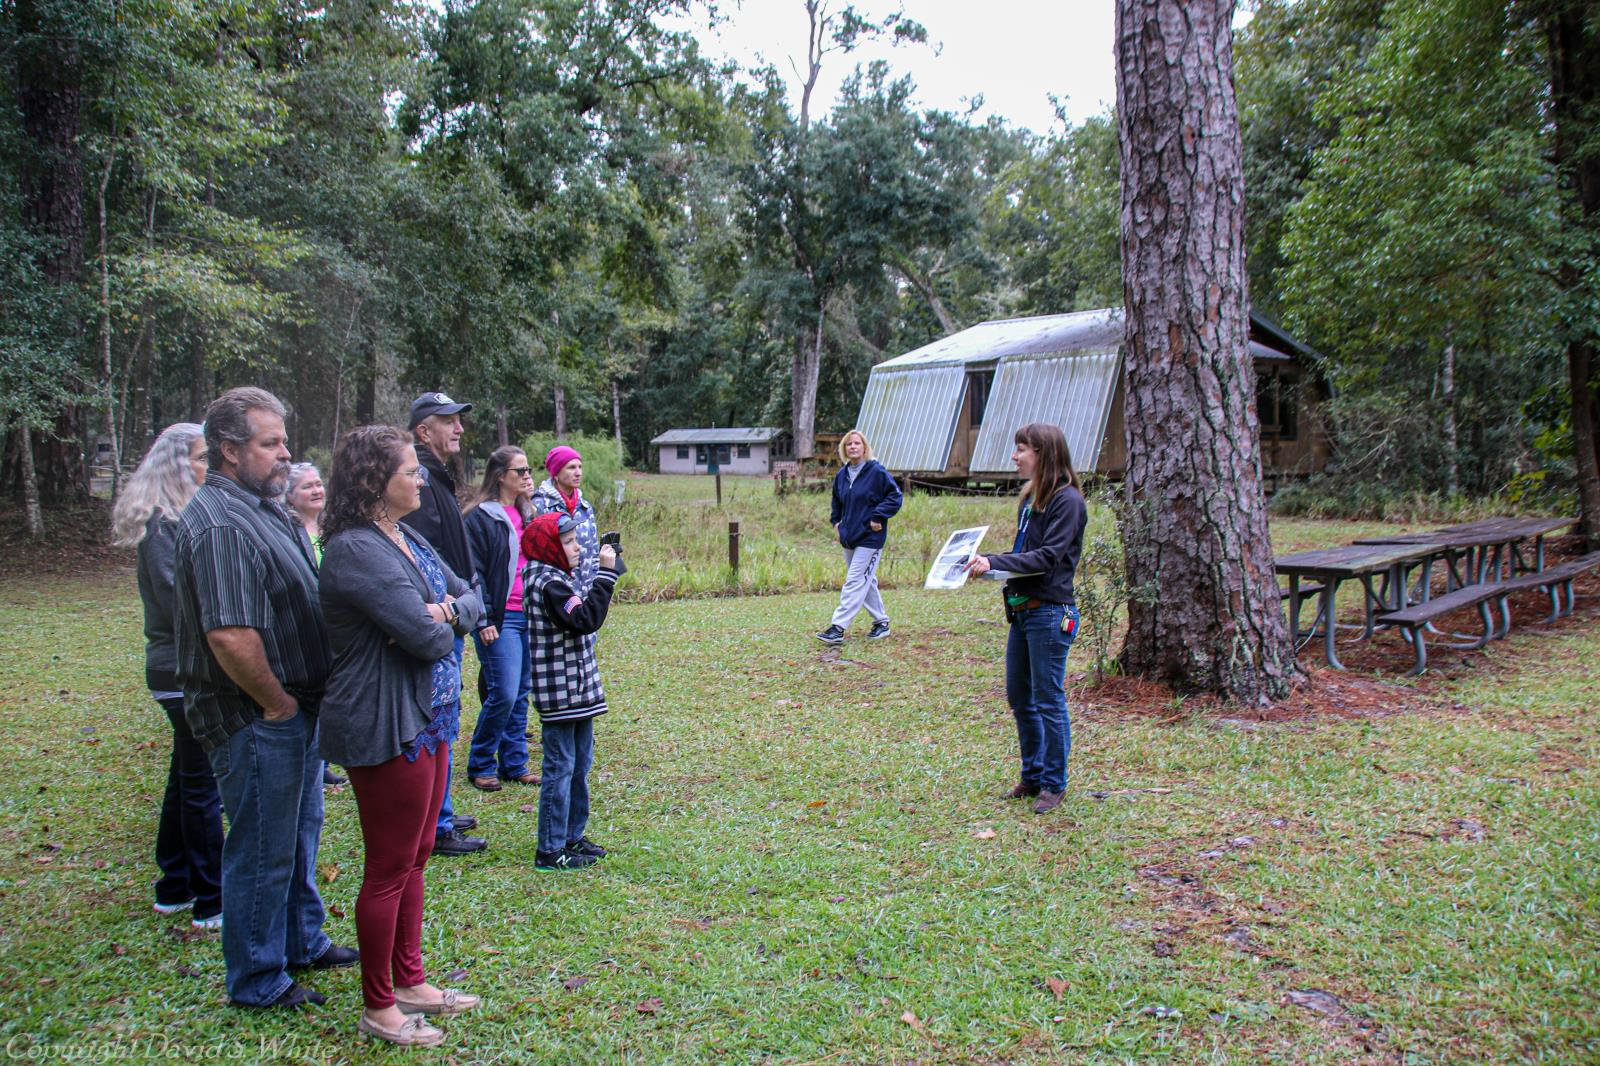 park naturalist explaining to a group in front of a tree and cabins, one child taking a photo in group